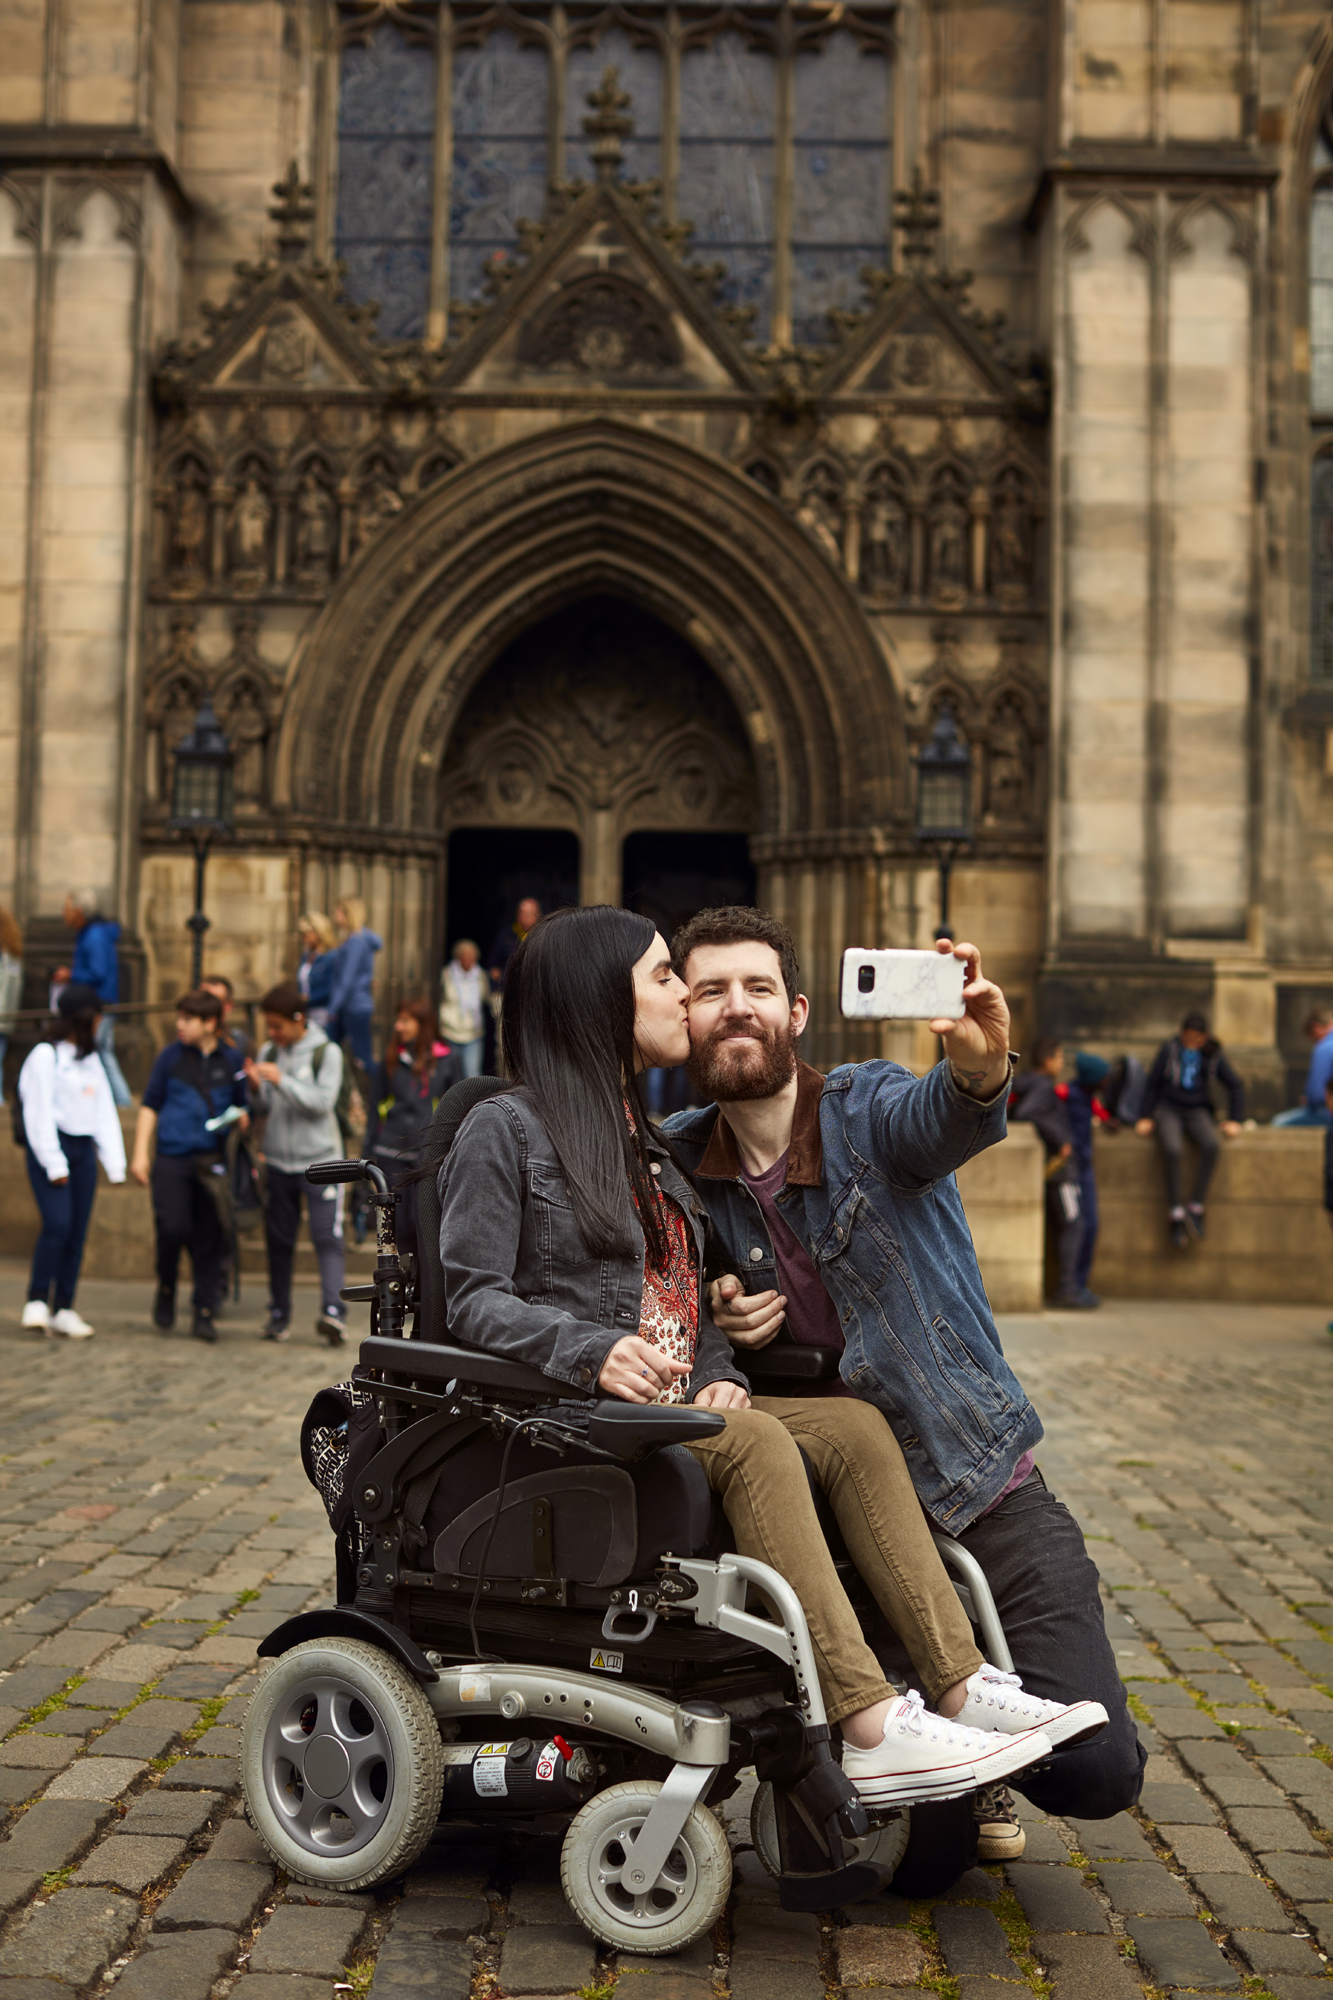 Emma and Allan posing for a selfie outside St Giles' Cathedral in Edinburgh. Emma is giving Allan a peck on the cheek.